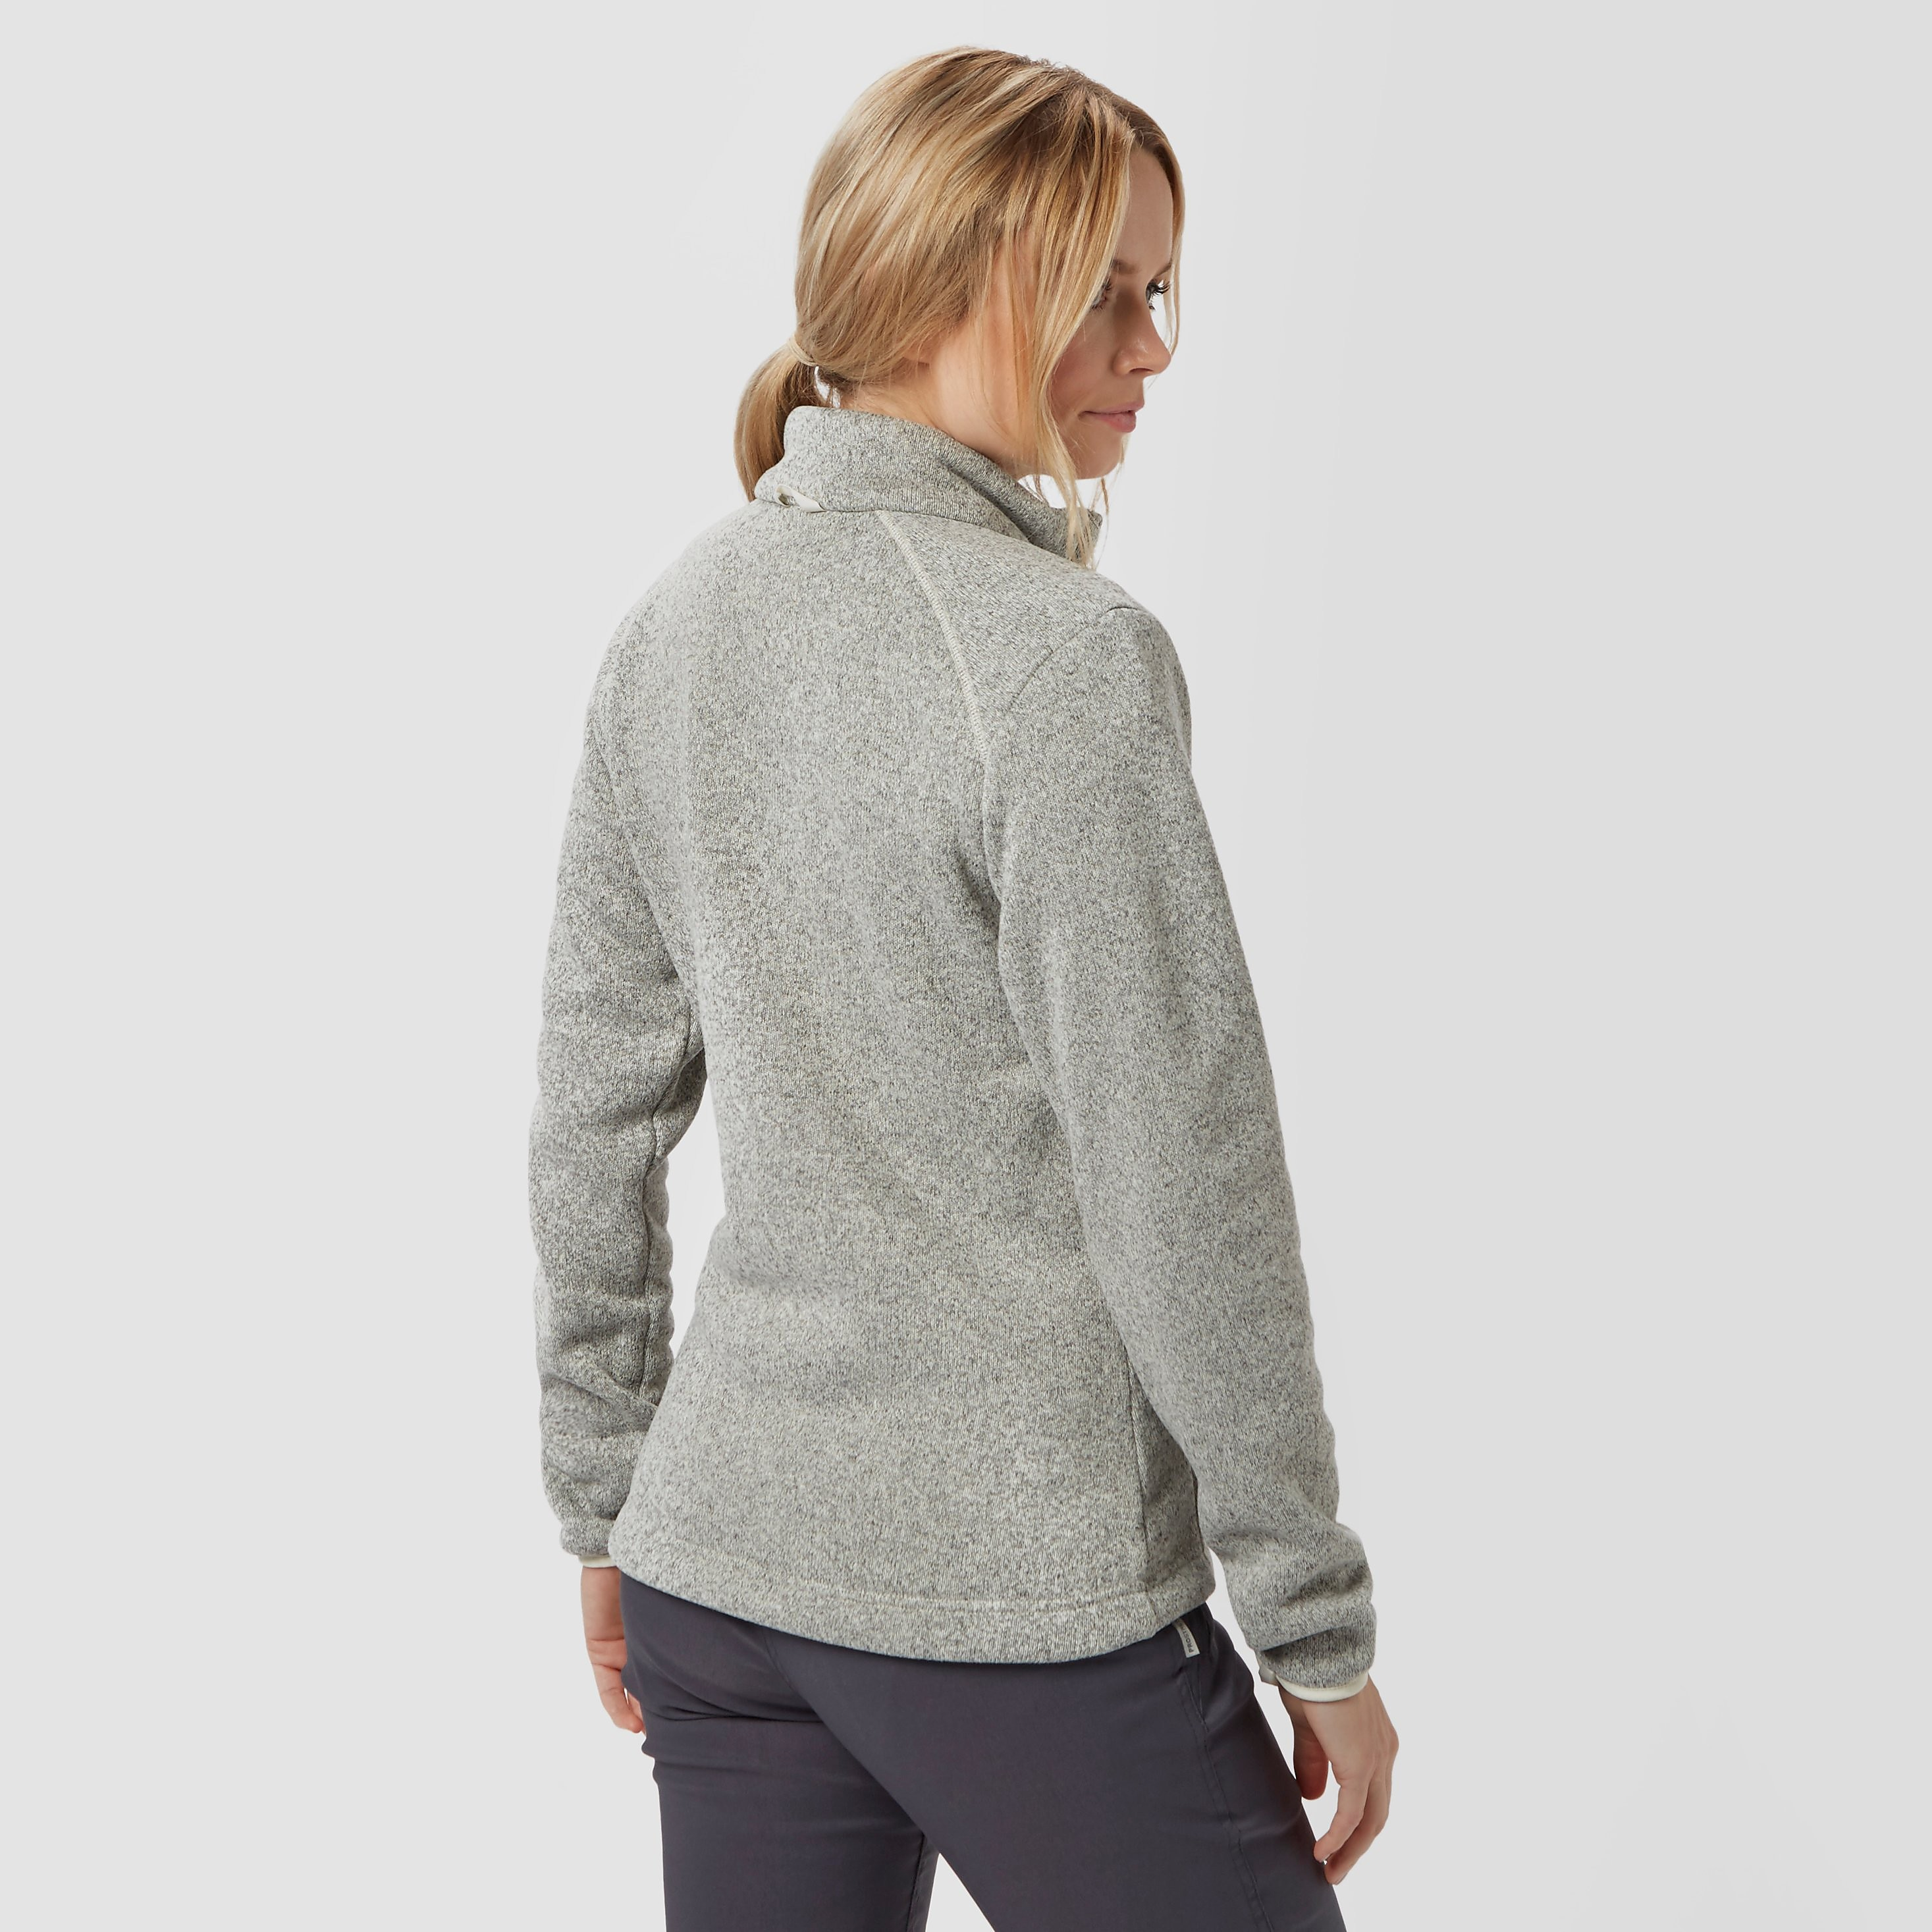 Jack Wolfskin Caribou Women's Full Zip Fleece Jacket